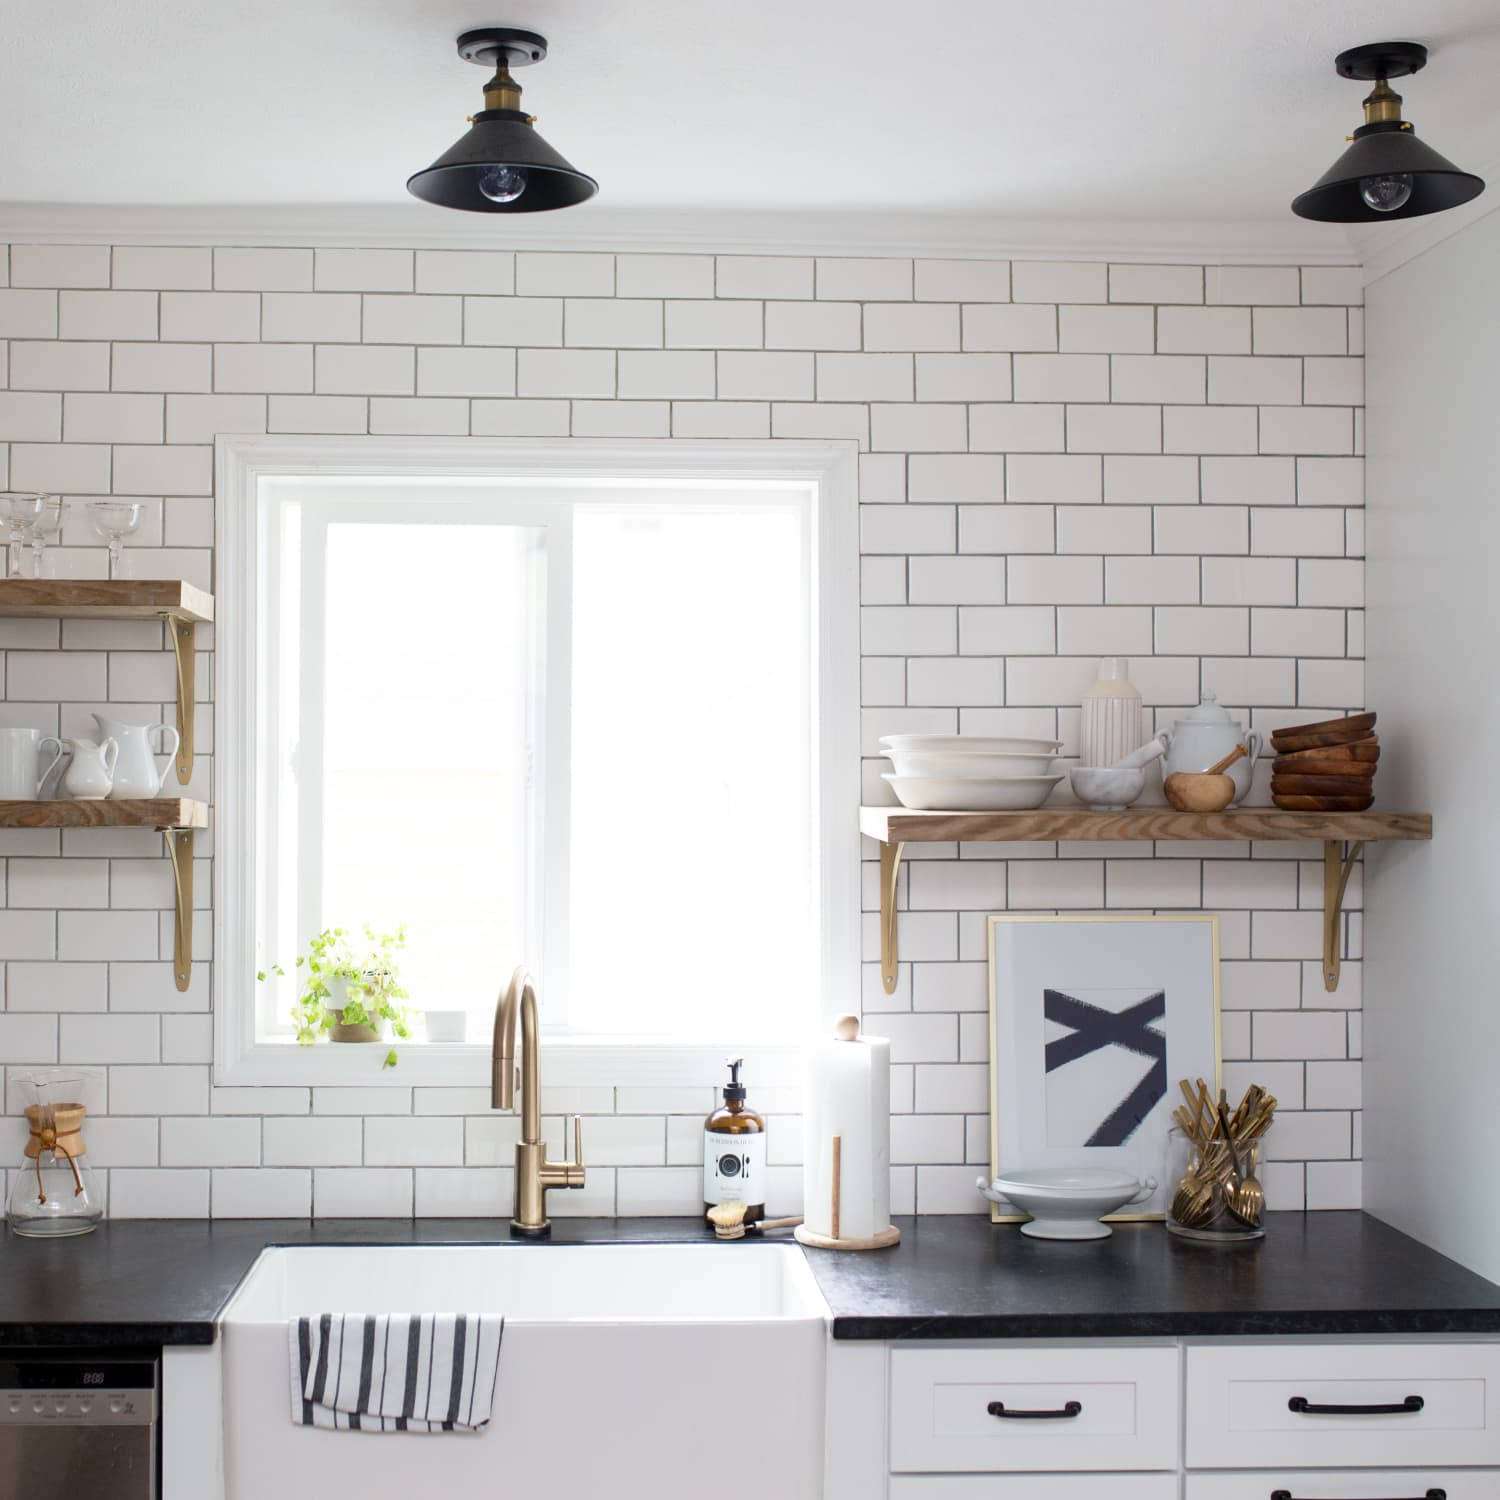 How To Save Money On Home Remodeling Costs Apartment Therapy